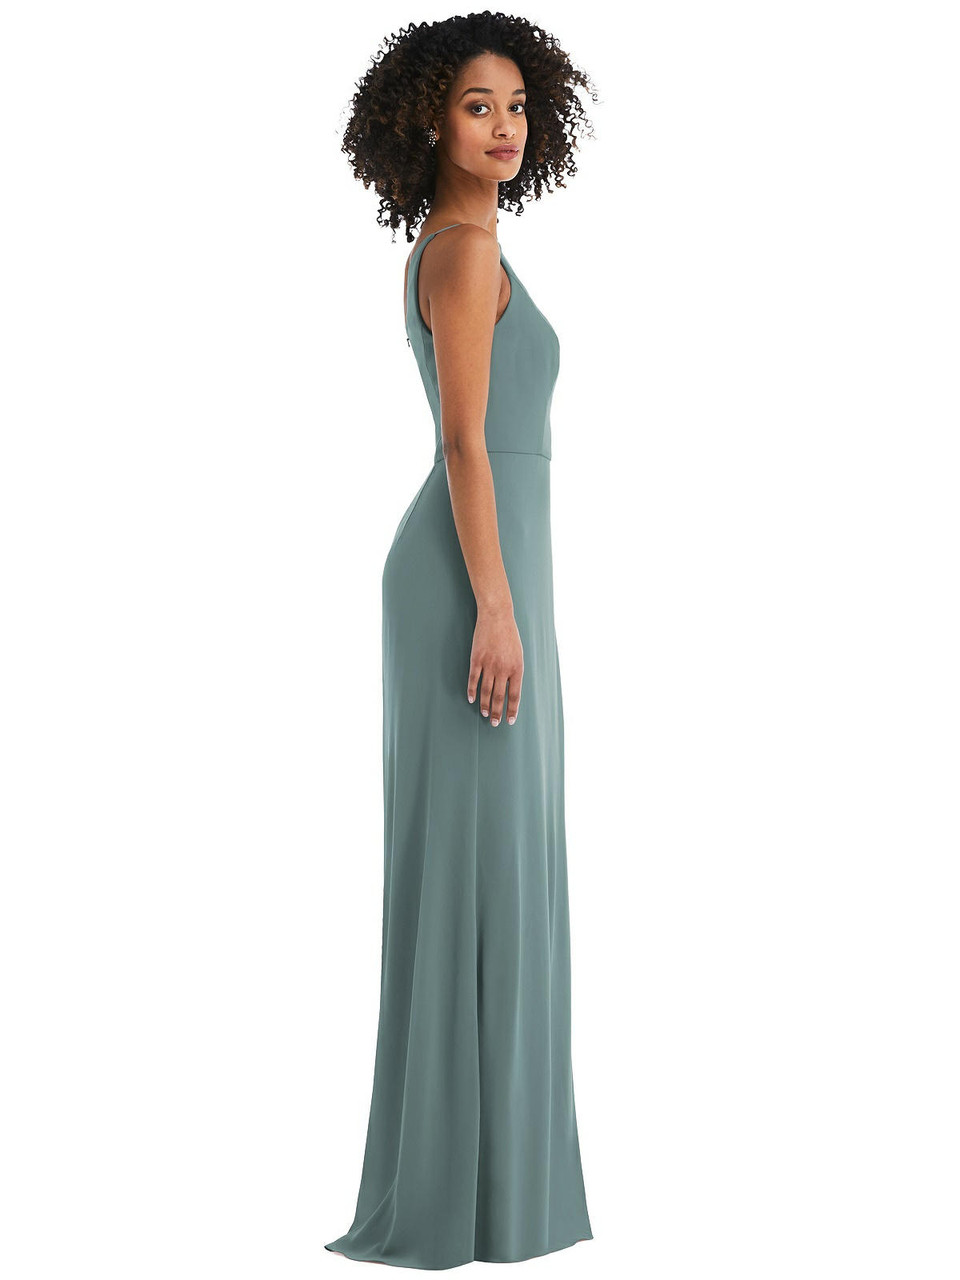 After Six Style 1544  |  Sheer Crepe - Skinny One-Shoulder Trumpet Gown with Front Slit